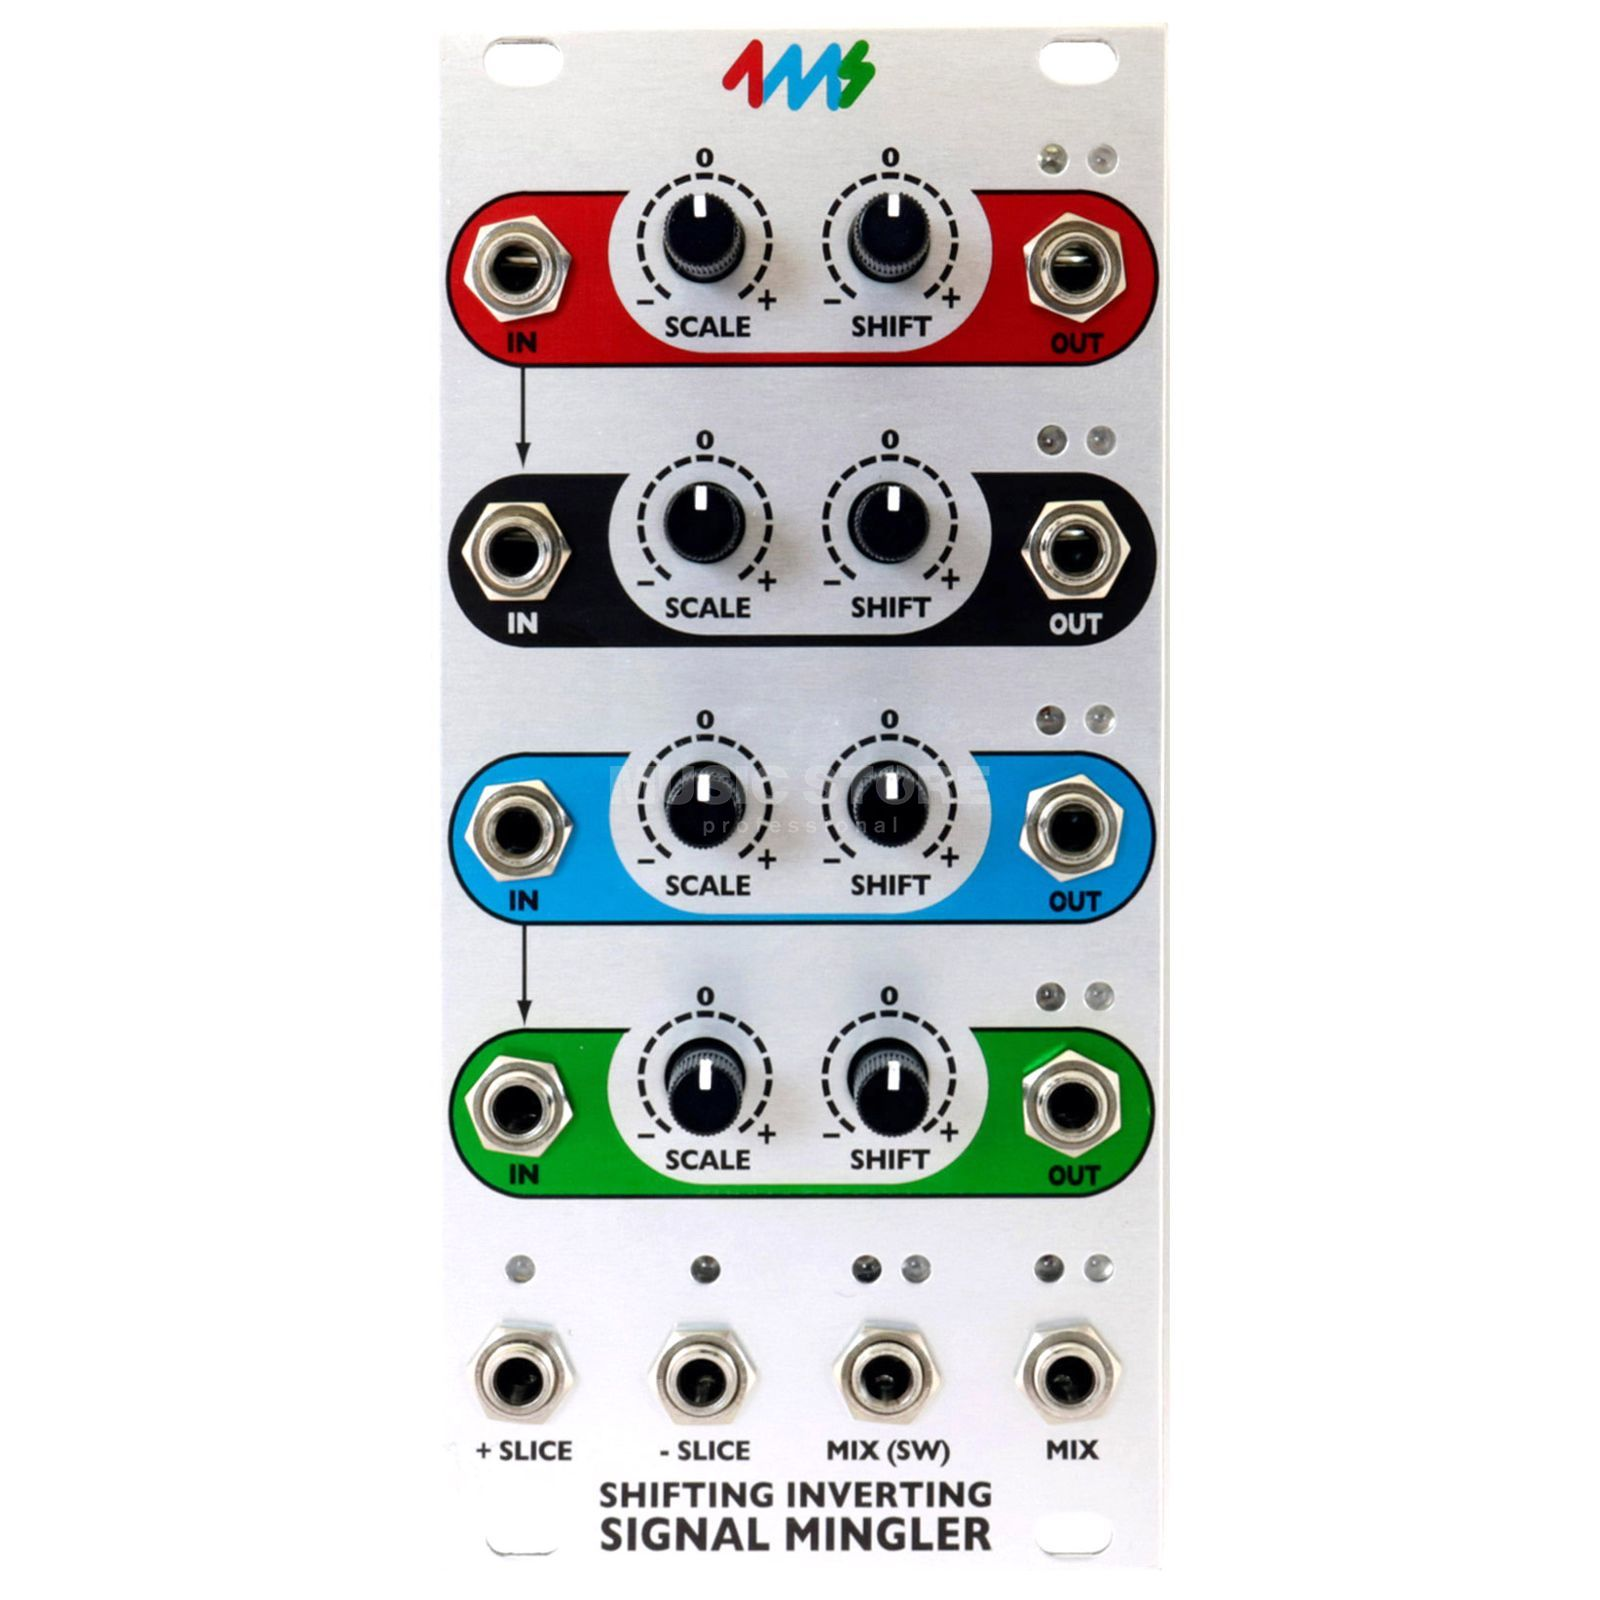 4ms Shifting Inverting Signal Mingler Produktbild